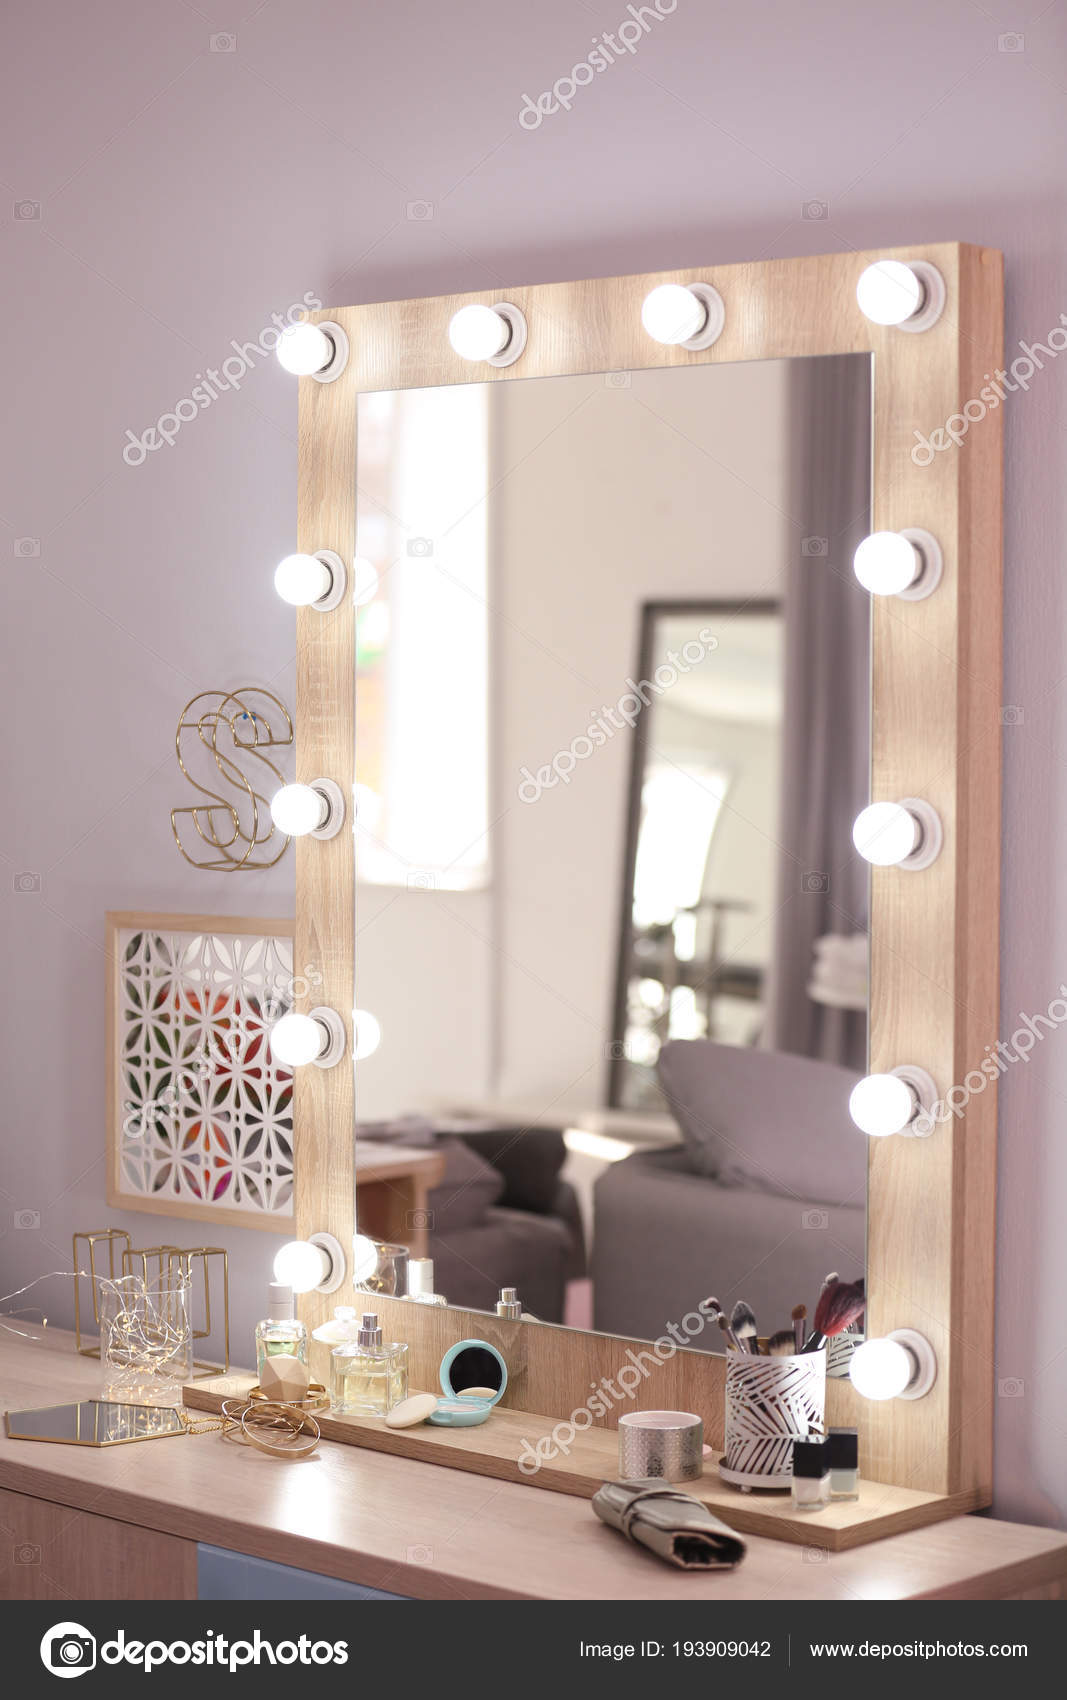 Cosmetic Table Mirror With Light Bulbs And Cosmetic Products On Dressing Table